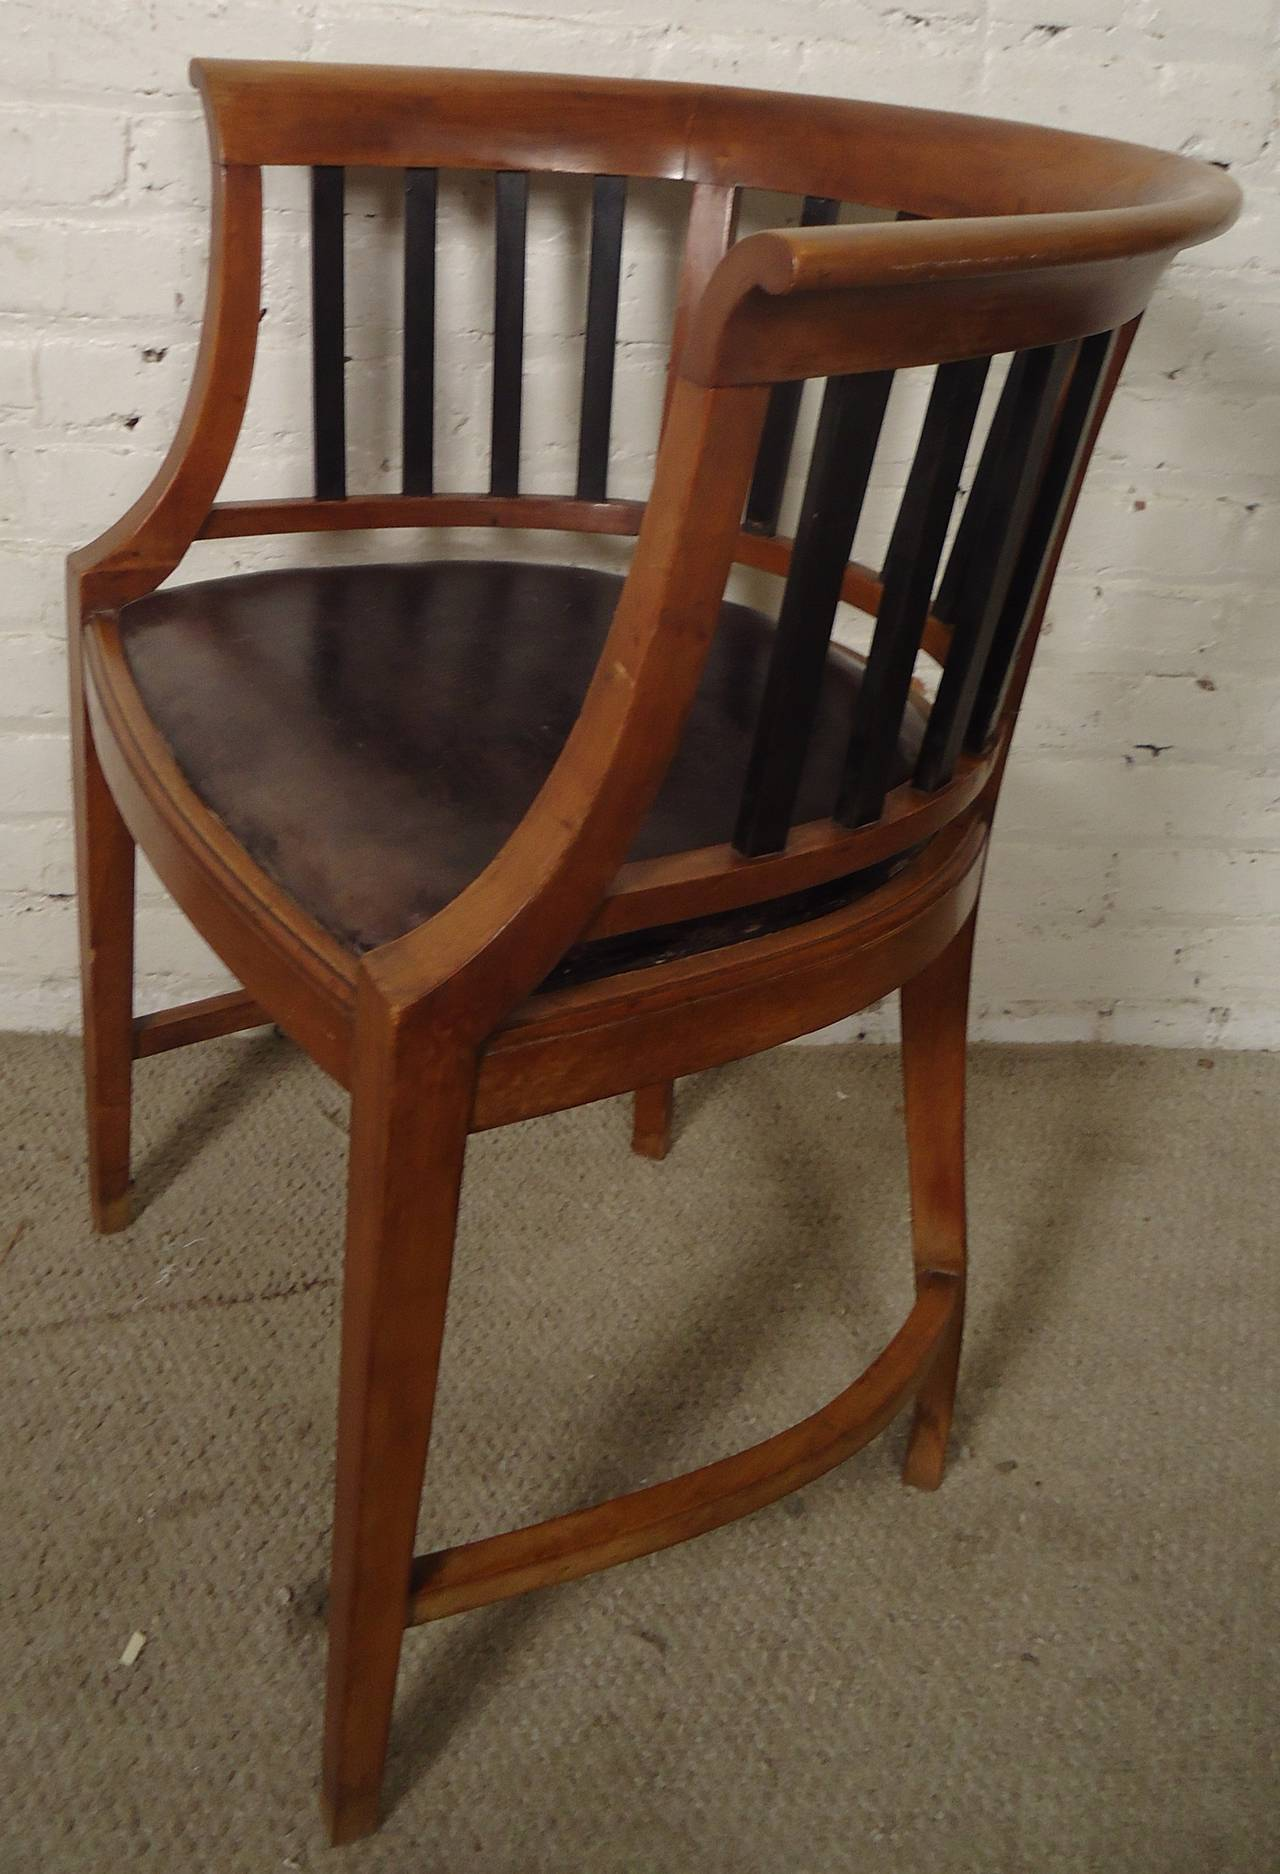 Unique Vintage Round Back Spindle Chair at 1stdibs